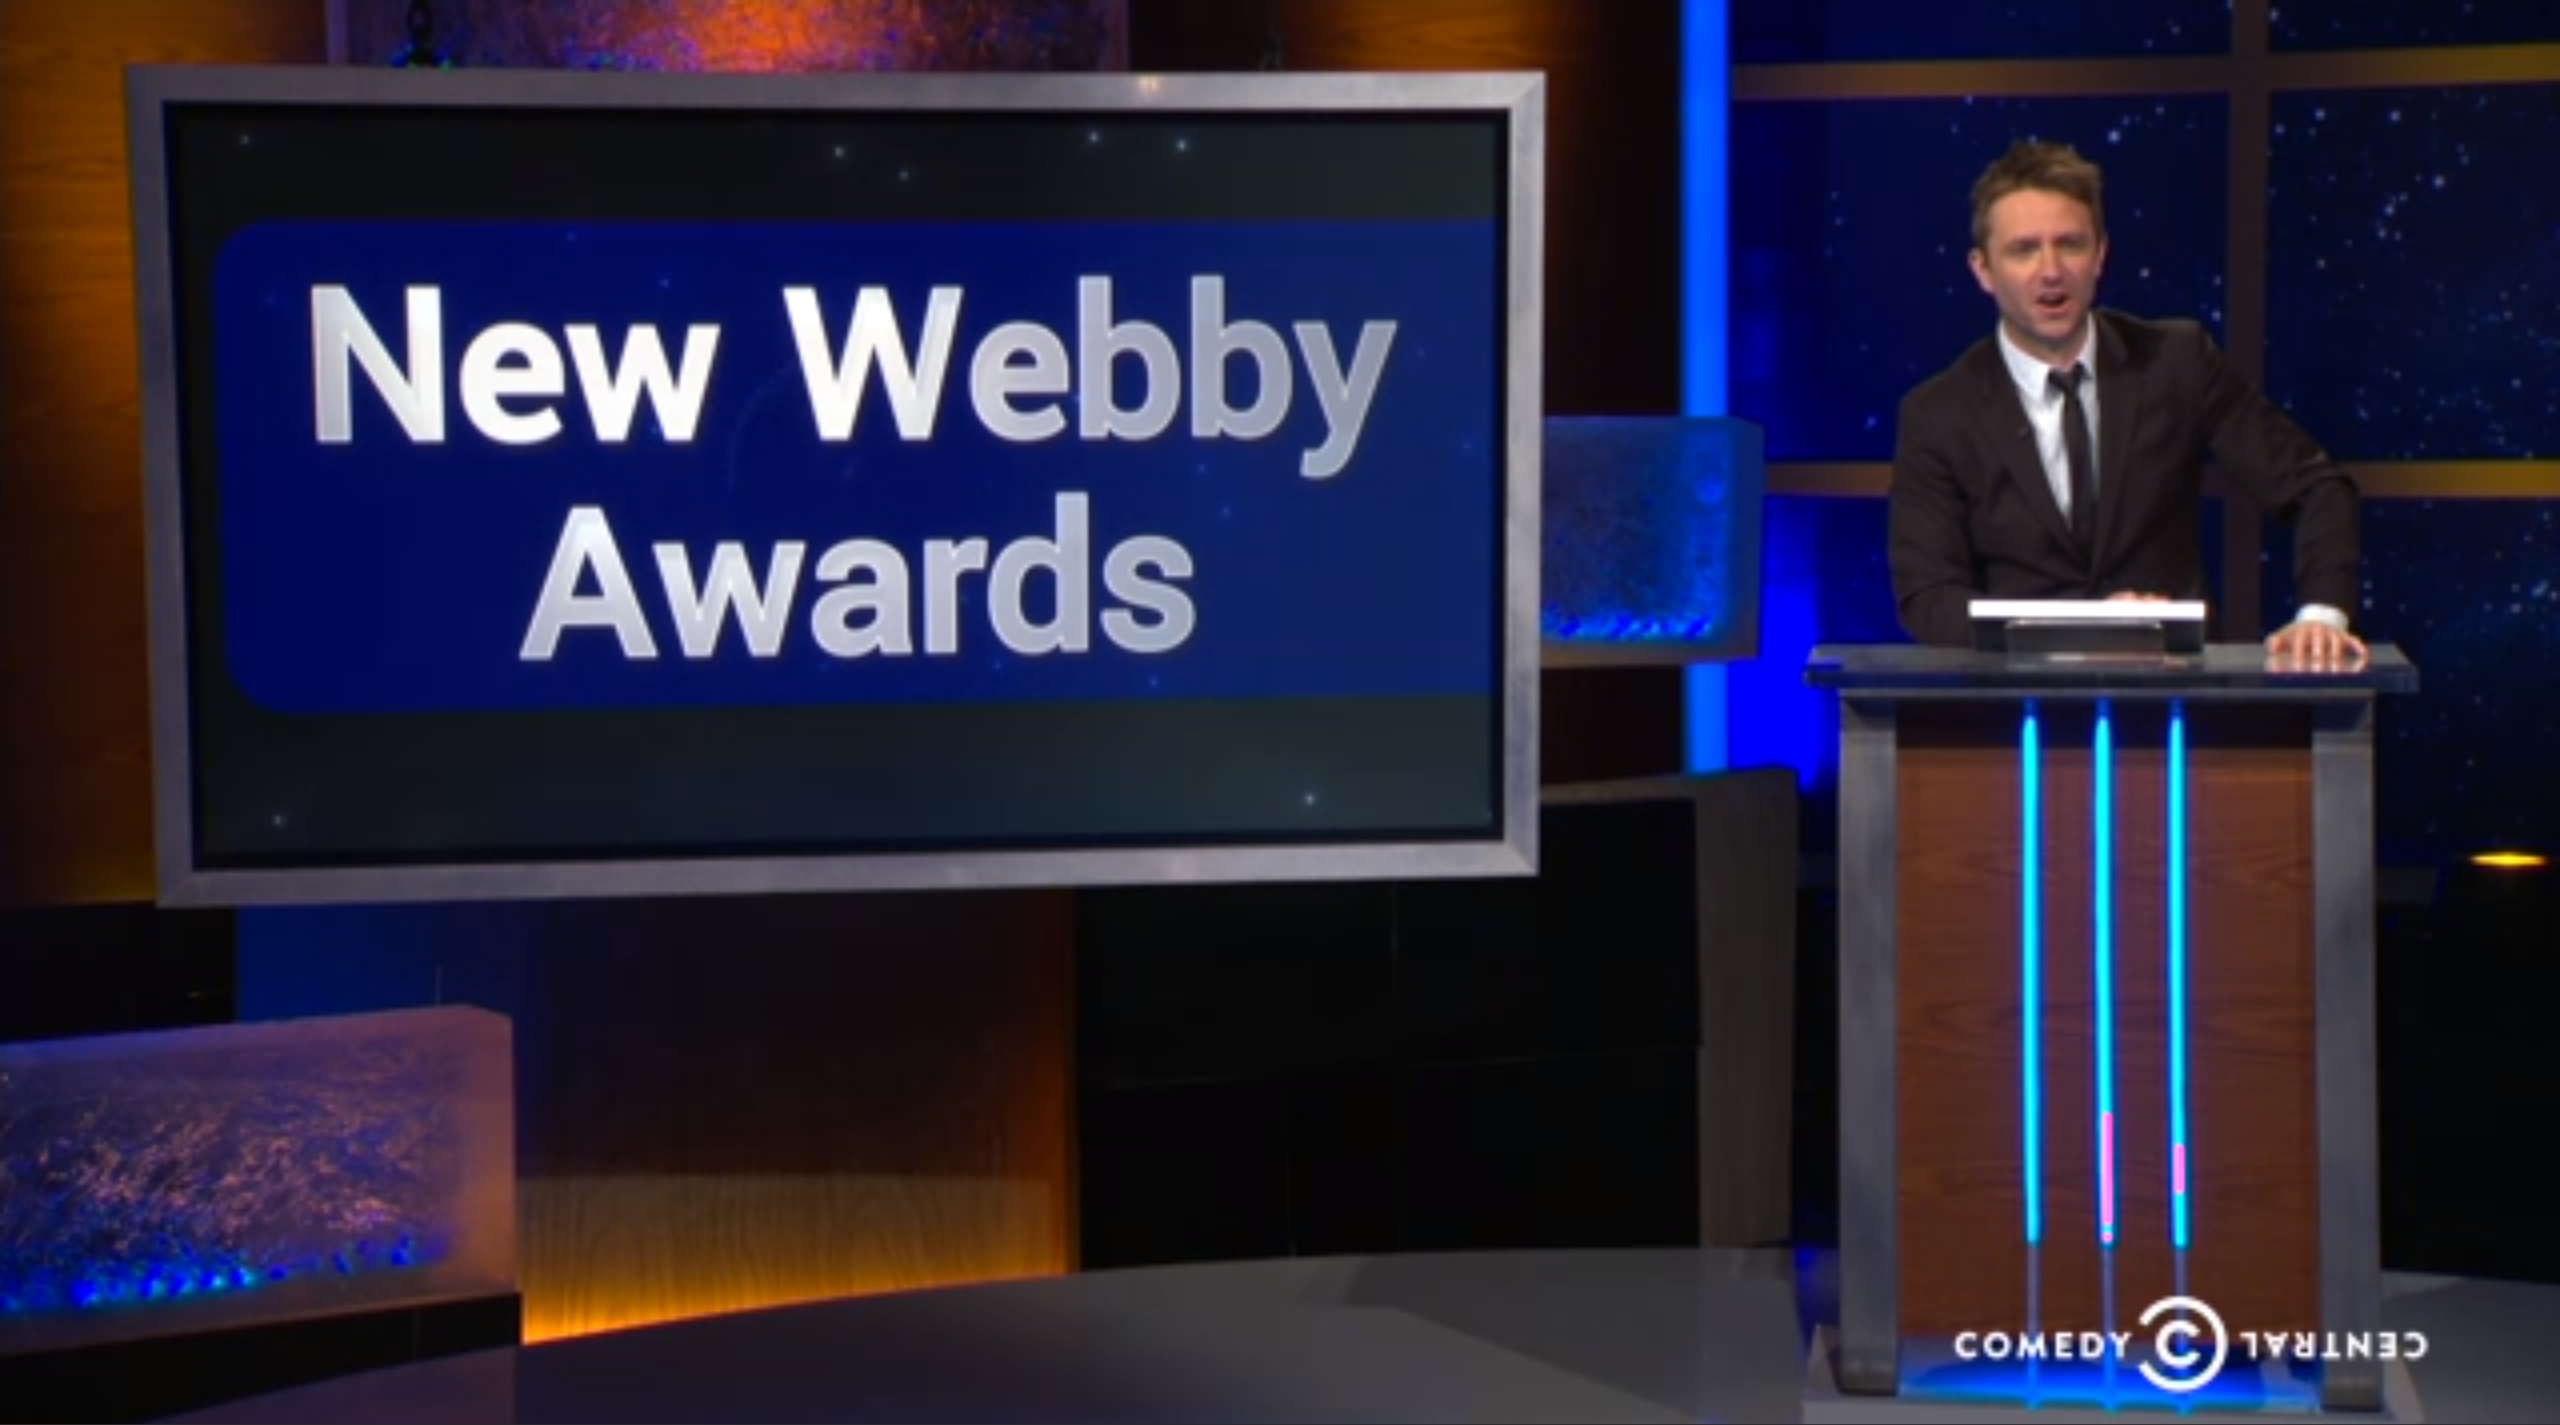 New Webby Awards - Let's Hear Your Gems